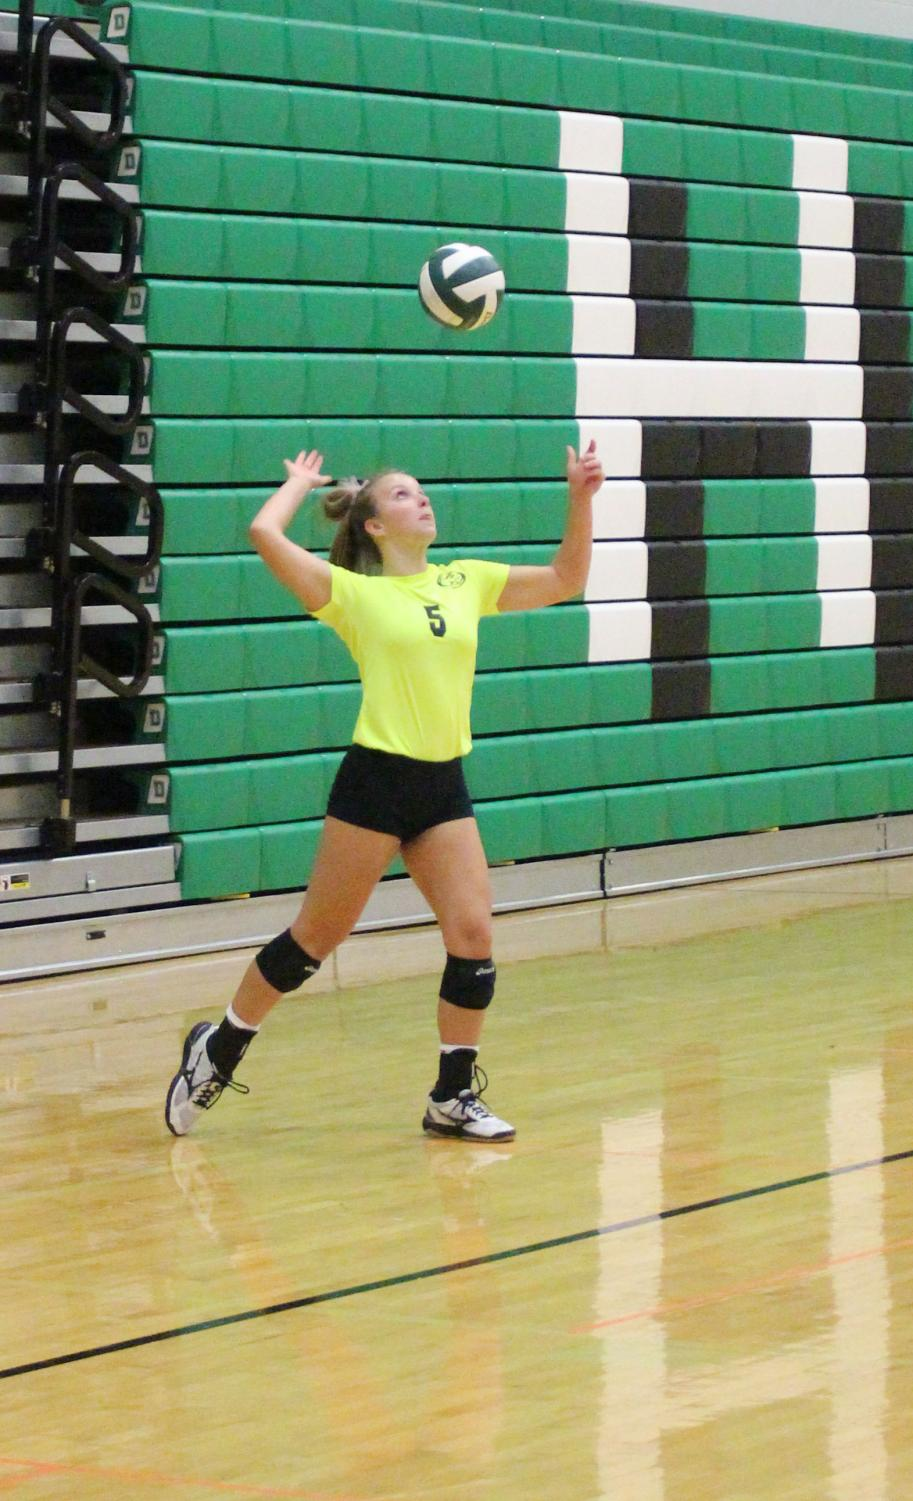 Senior heather Mills Serves the ball across the court.